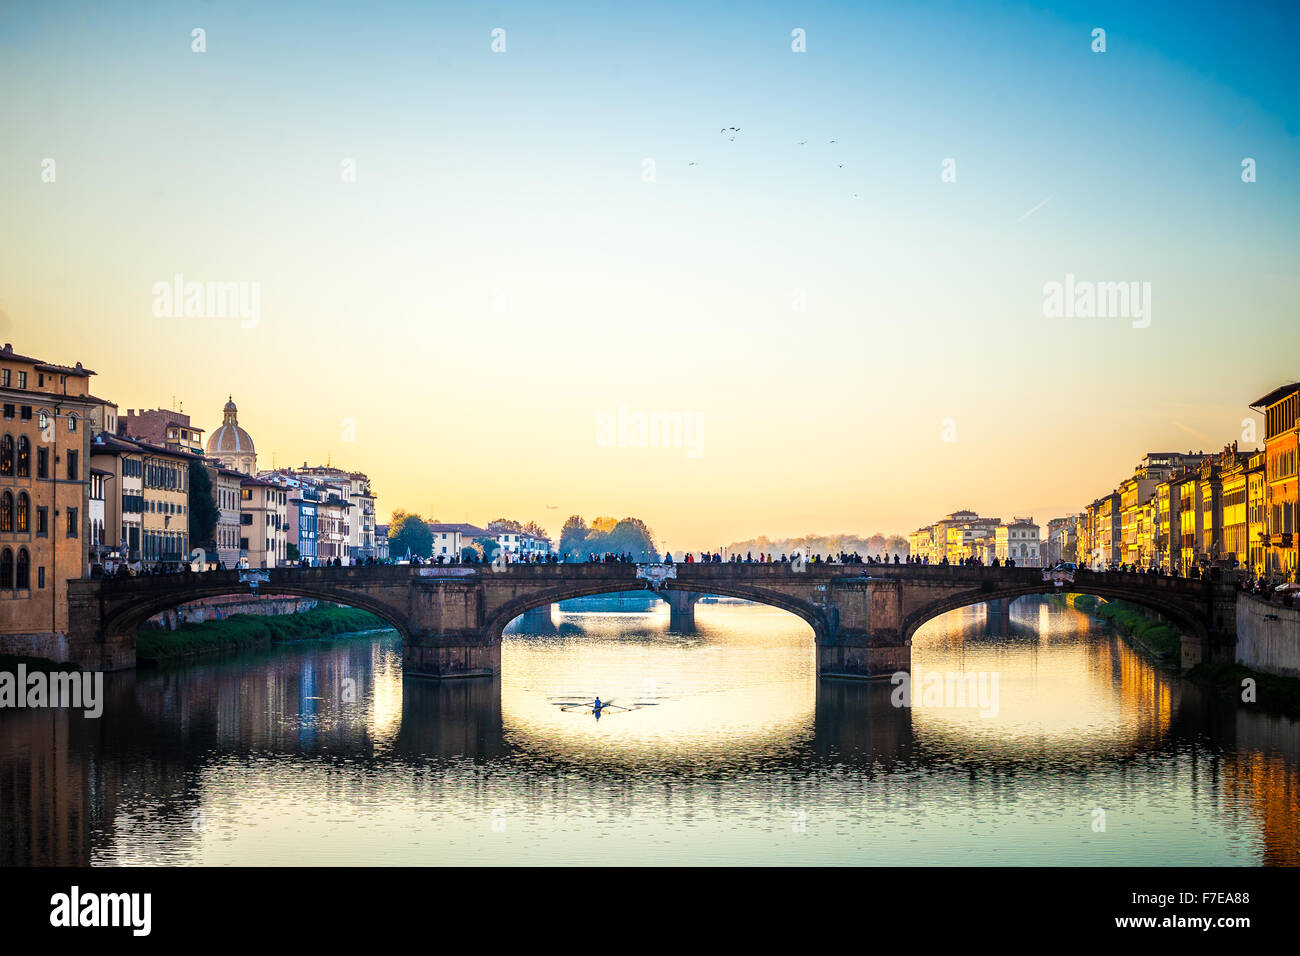 The amazing Ponte Vecchio over Arno River in Florence, Italy. Under the bridge one guy rowing - Stock Image